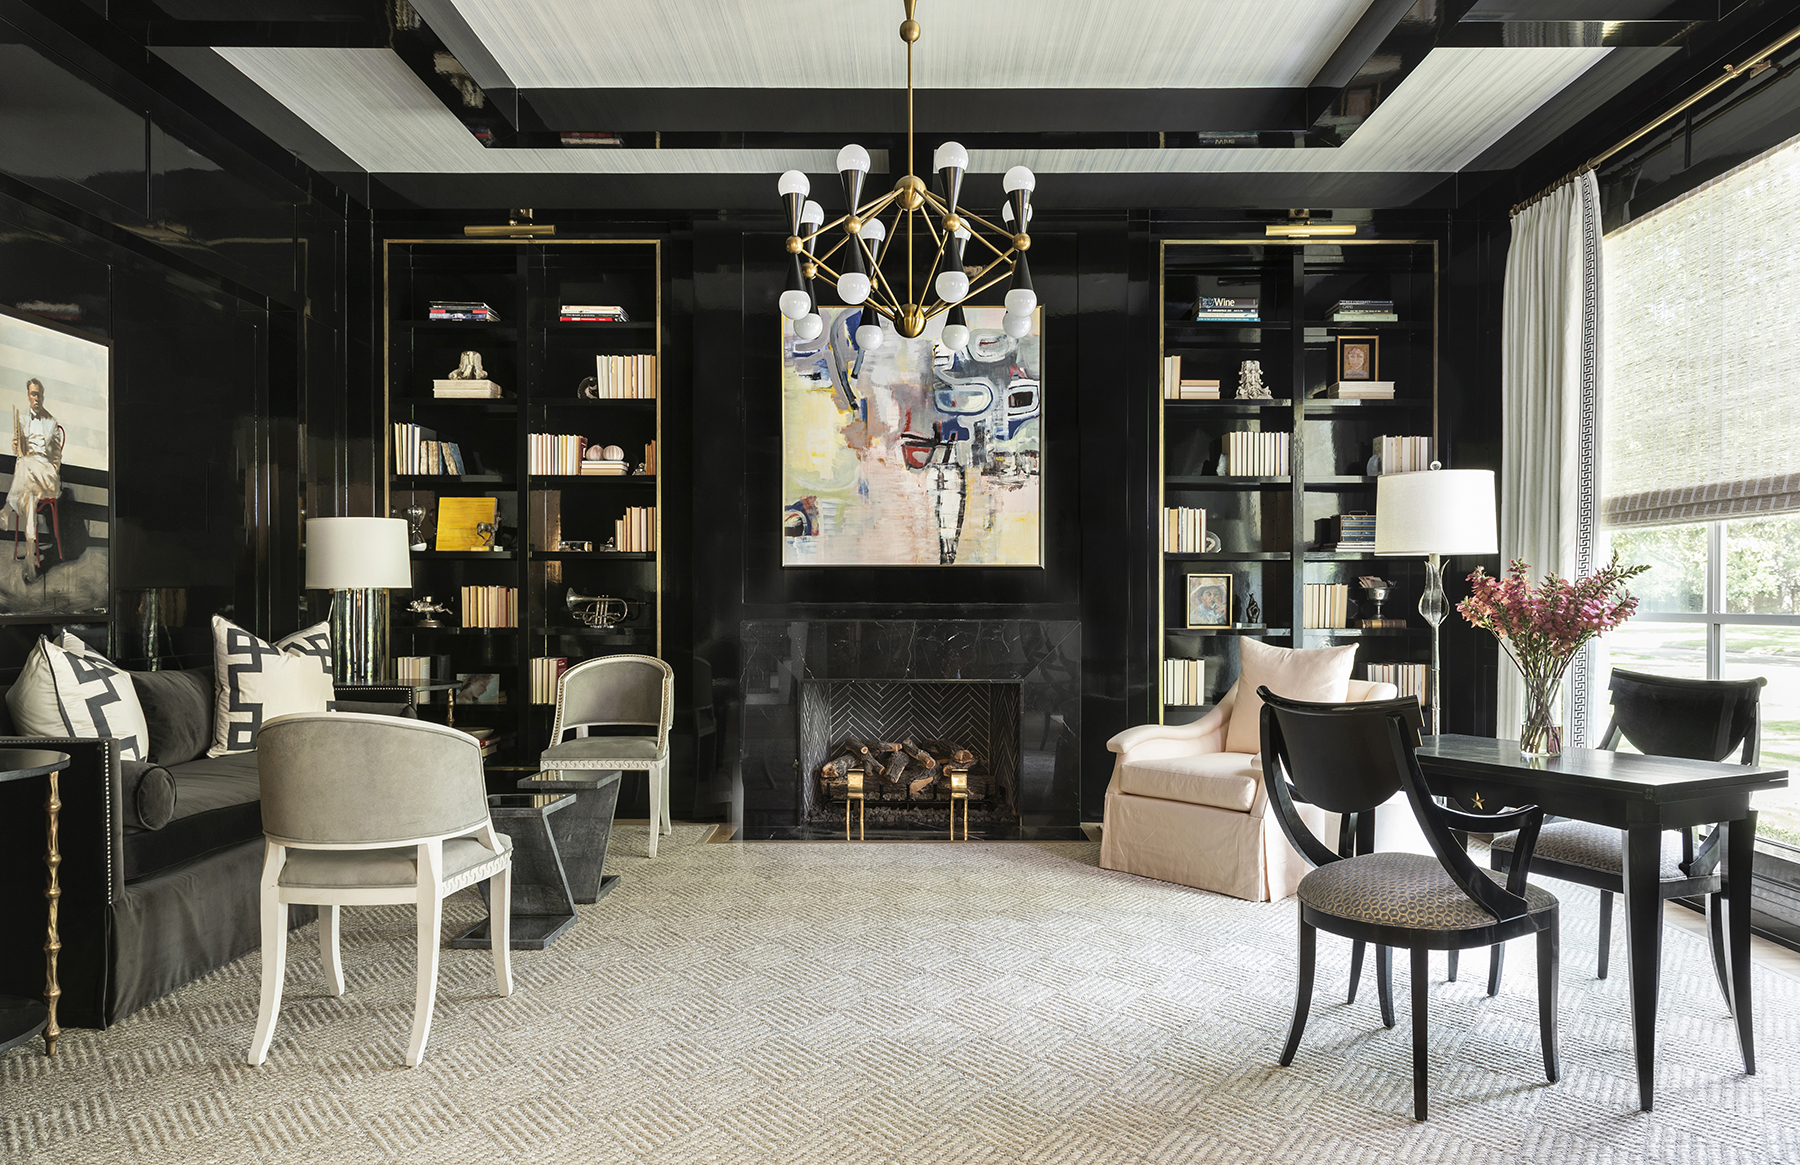 Bespoke reading room space with black walls and book shelves